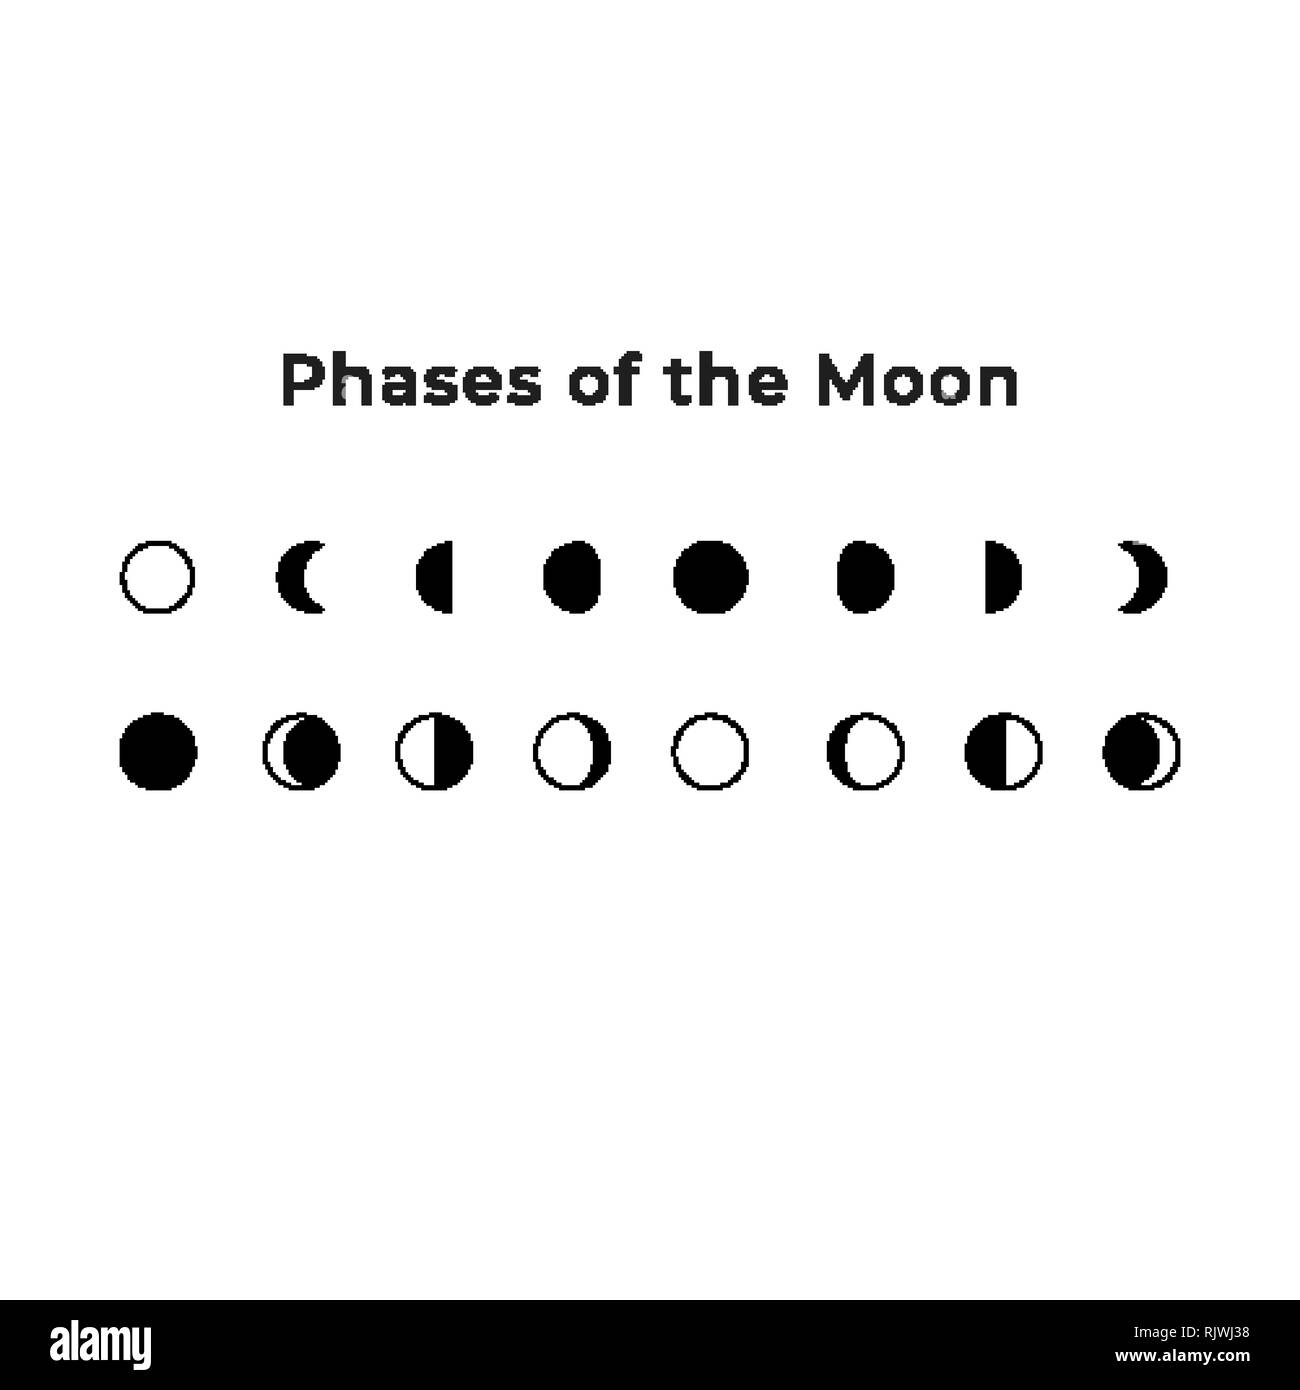 Phases of the Moon illustration. Earth satellite icons - Stock Image